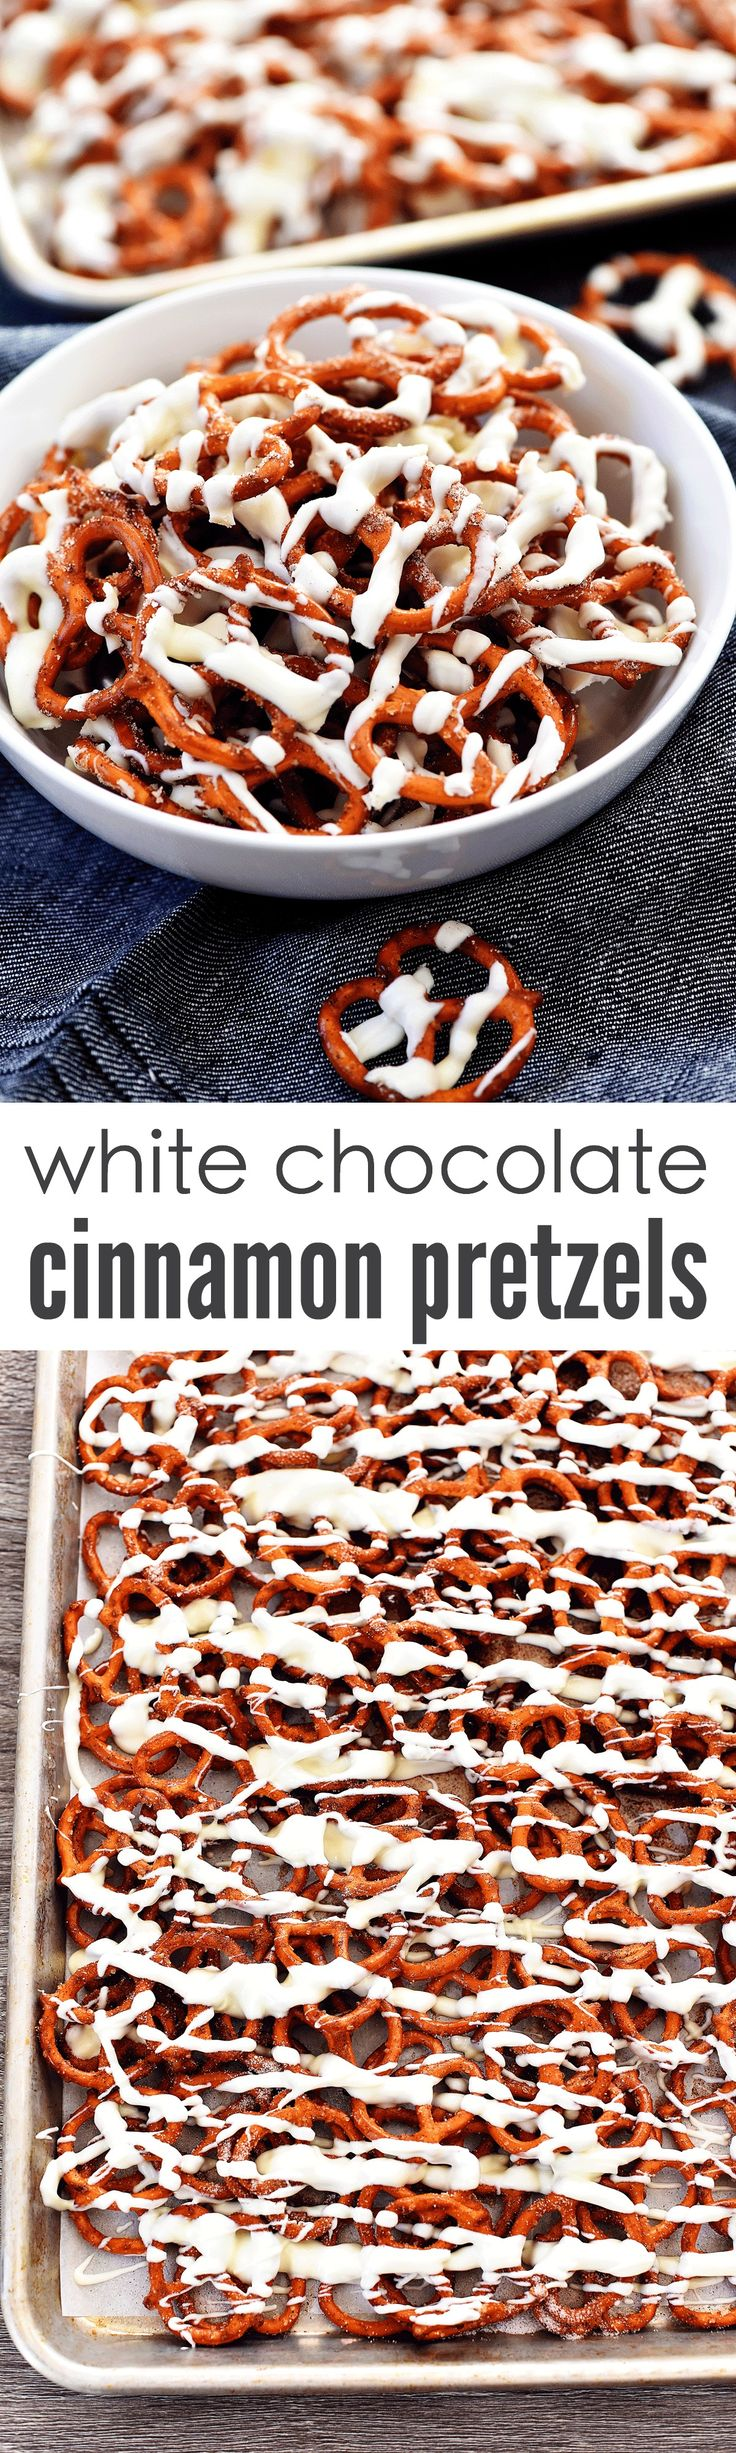 I had every intention of sharing this recipe last week, but I got too caught up in all the Christmas fun with my family! We had such a great holiday, and as always, it flew by way too fast.  I made these WHITE CHOCOLATE CINNAMON PRETZELS for an easy and yummy treat for us... Read More »